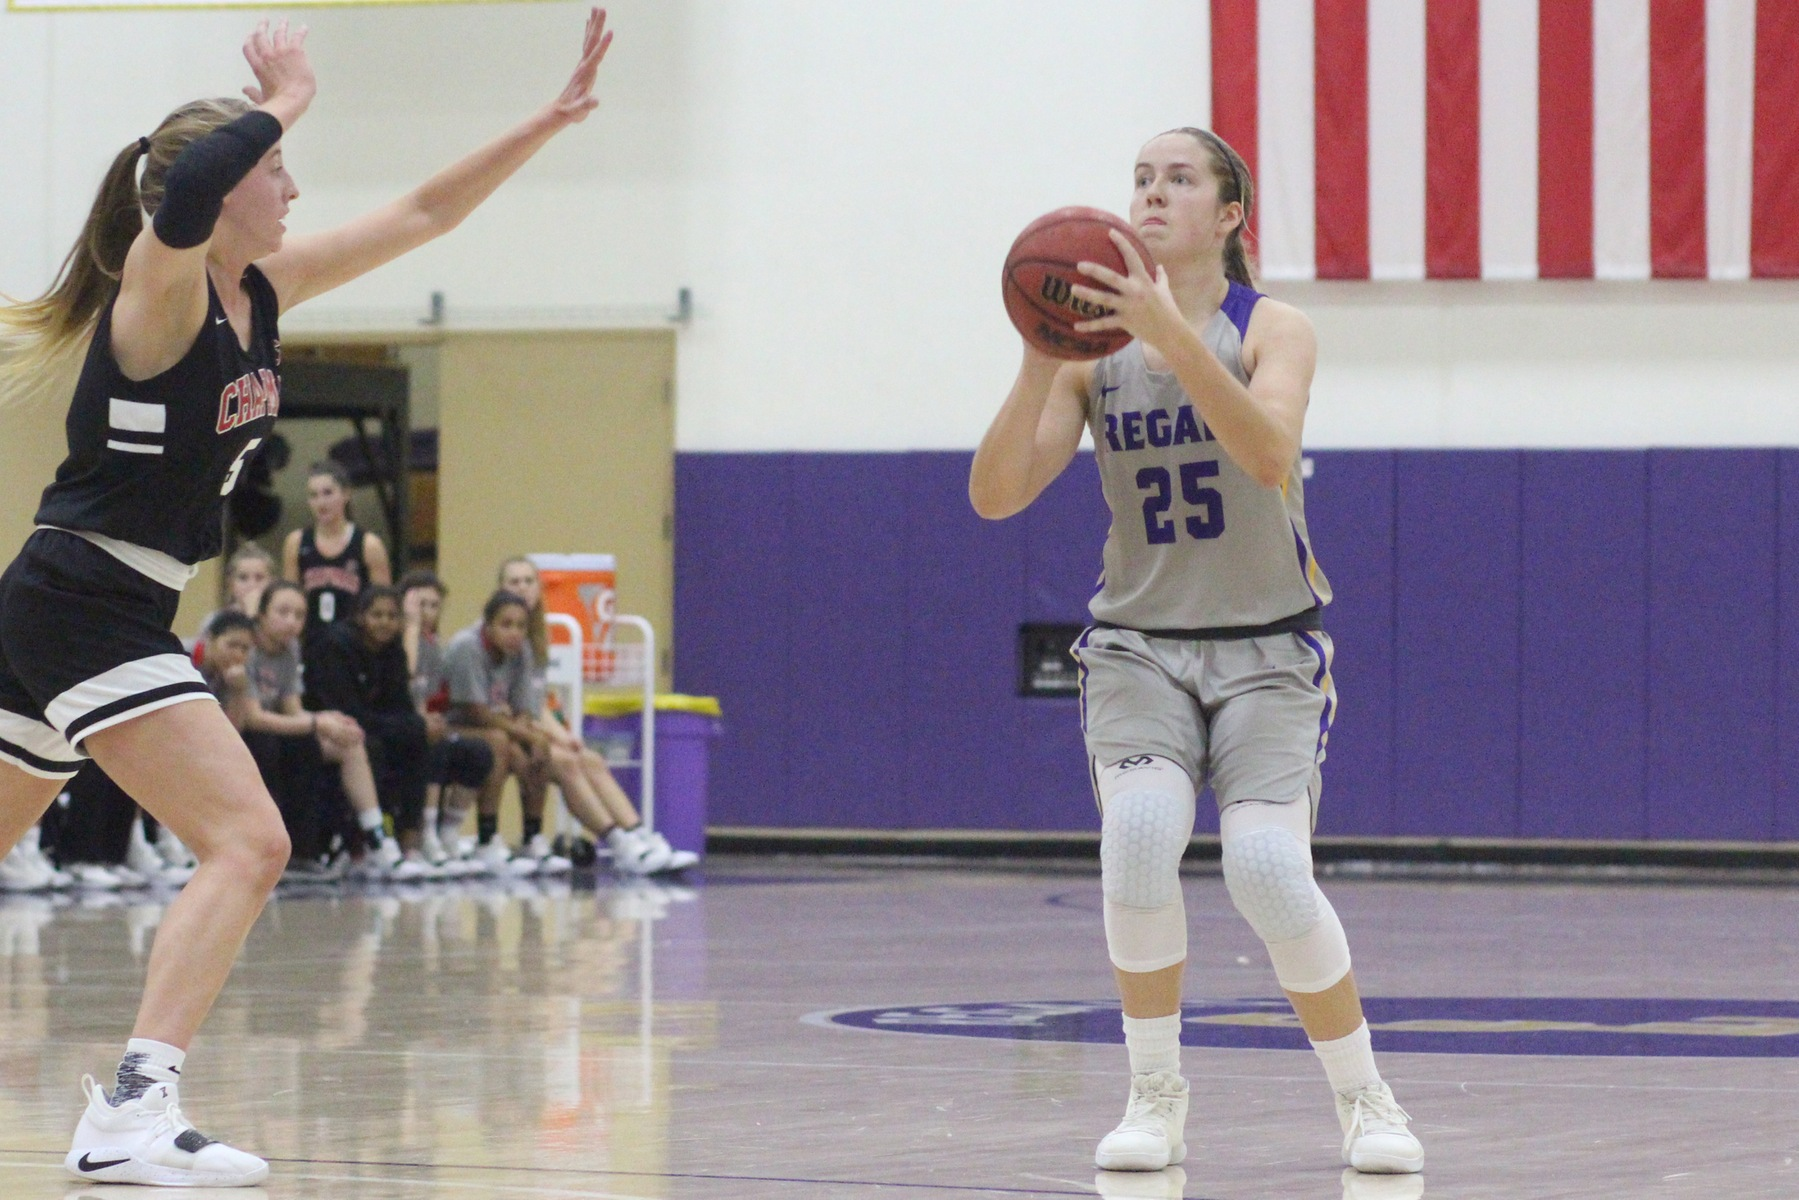 Regals Stun Chapman 58-55 to Take Top Spot in SCIAC